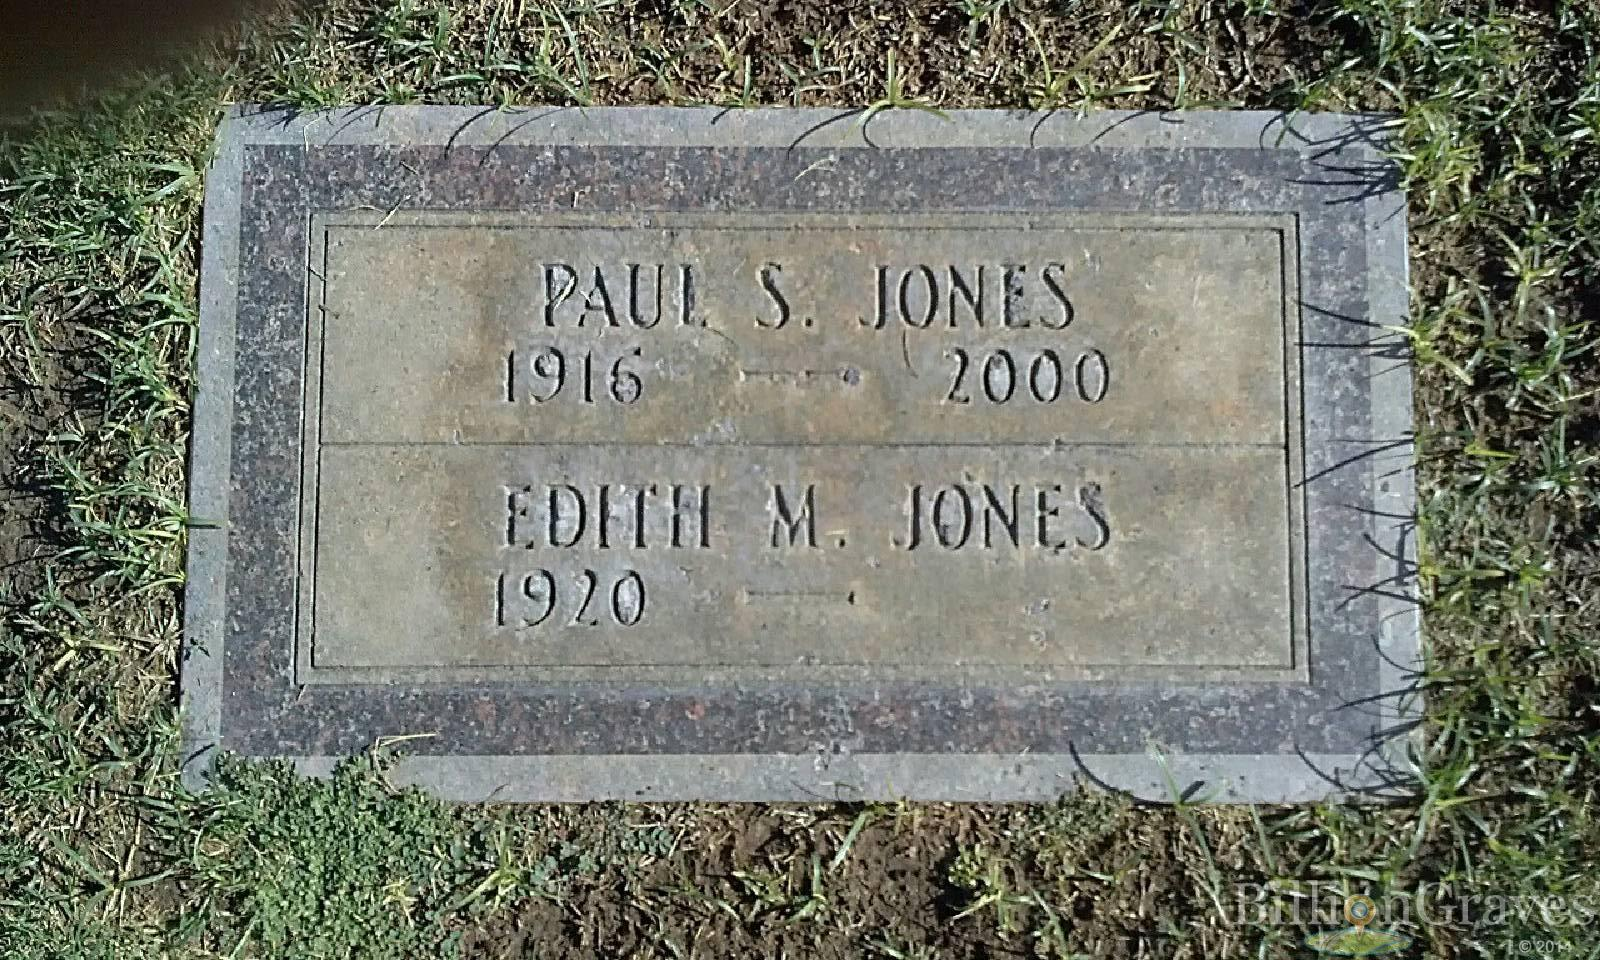 grave site of paul s jones billiongraves headstone image of paul s jones